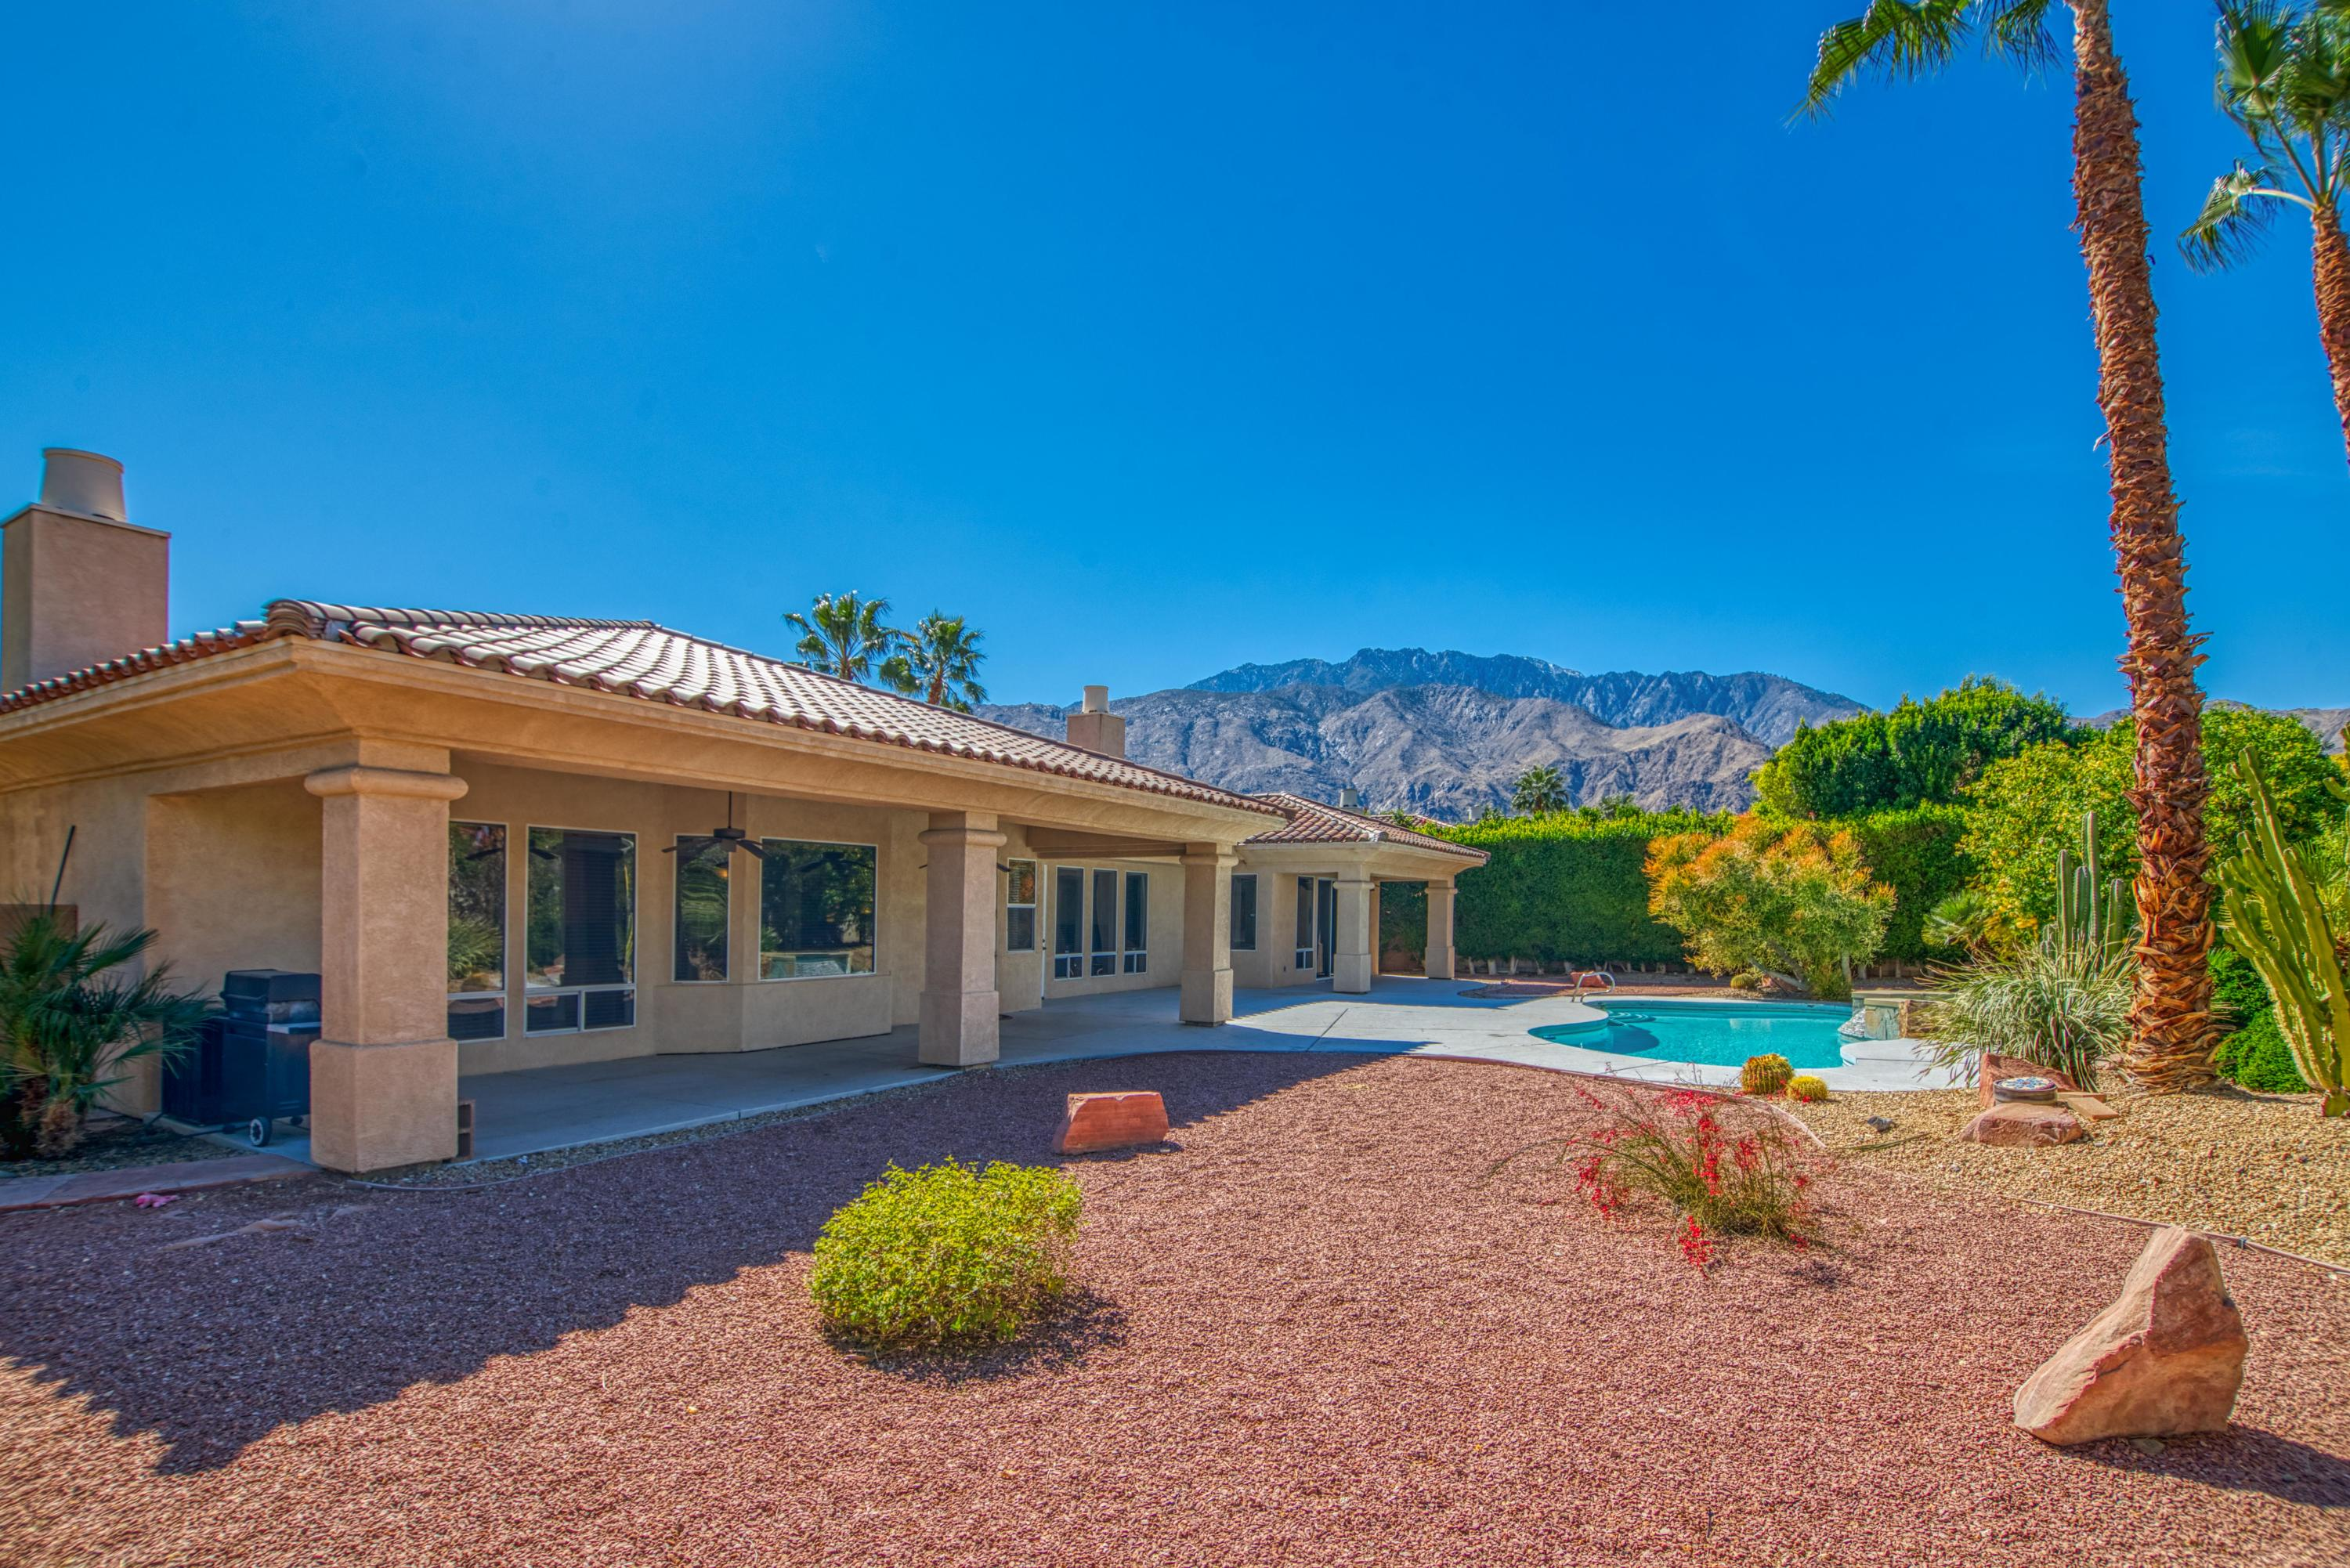 High ceilings, multiple entertaining areas, modern enhancements including porcelain tile throughout and a private backyard with pool, spa and mountain views all located within one mile of downtown Palm Springs.  This 4 bed, 3.5 bath home at Colony El Mirador is ready for you to enjoy!  Formal entry opens to the south-facing formal dining room as well as the adjacent living room that has a vaulted ceiling, gas fireplace, and access to the backyard.  Adjacent powder bath, too!  Separate great room includes a light and bright kitchen styled up with quartz counters, stainless appliances and a large detached island that opens to the casual dining area as well as a large family room with gas fireplace, entertainment center and custom cabinets.  Easy access to the backyard!    You will also love the large laundry room with sink that leads to the three car garage that includes storage.  Master Suite opens to the backyard and has a private bath with dual sinks, a walk-in shower, separate tub and a large walk-in closet.  South-facing Junior Ensuite Two connects to a hallway bath also services Bedroom Three.  On the other side of the house is Bedroom Four which connects to a private bath.